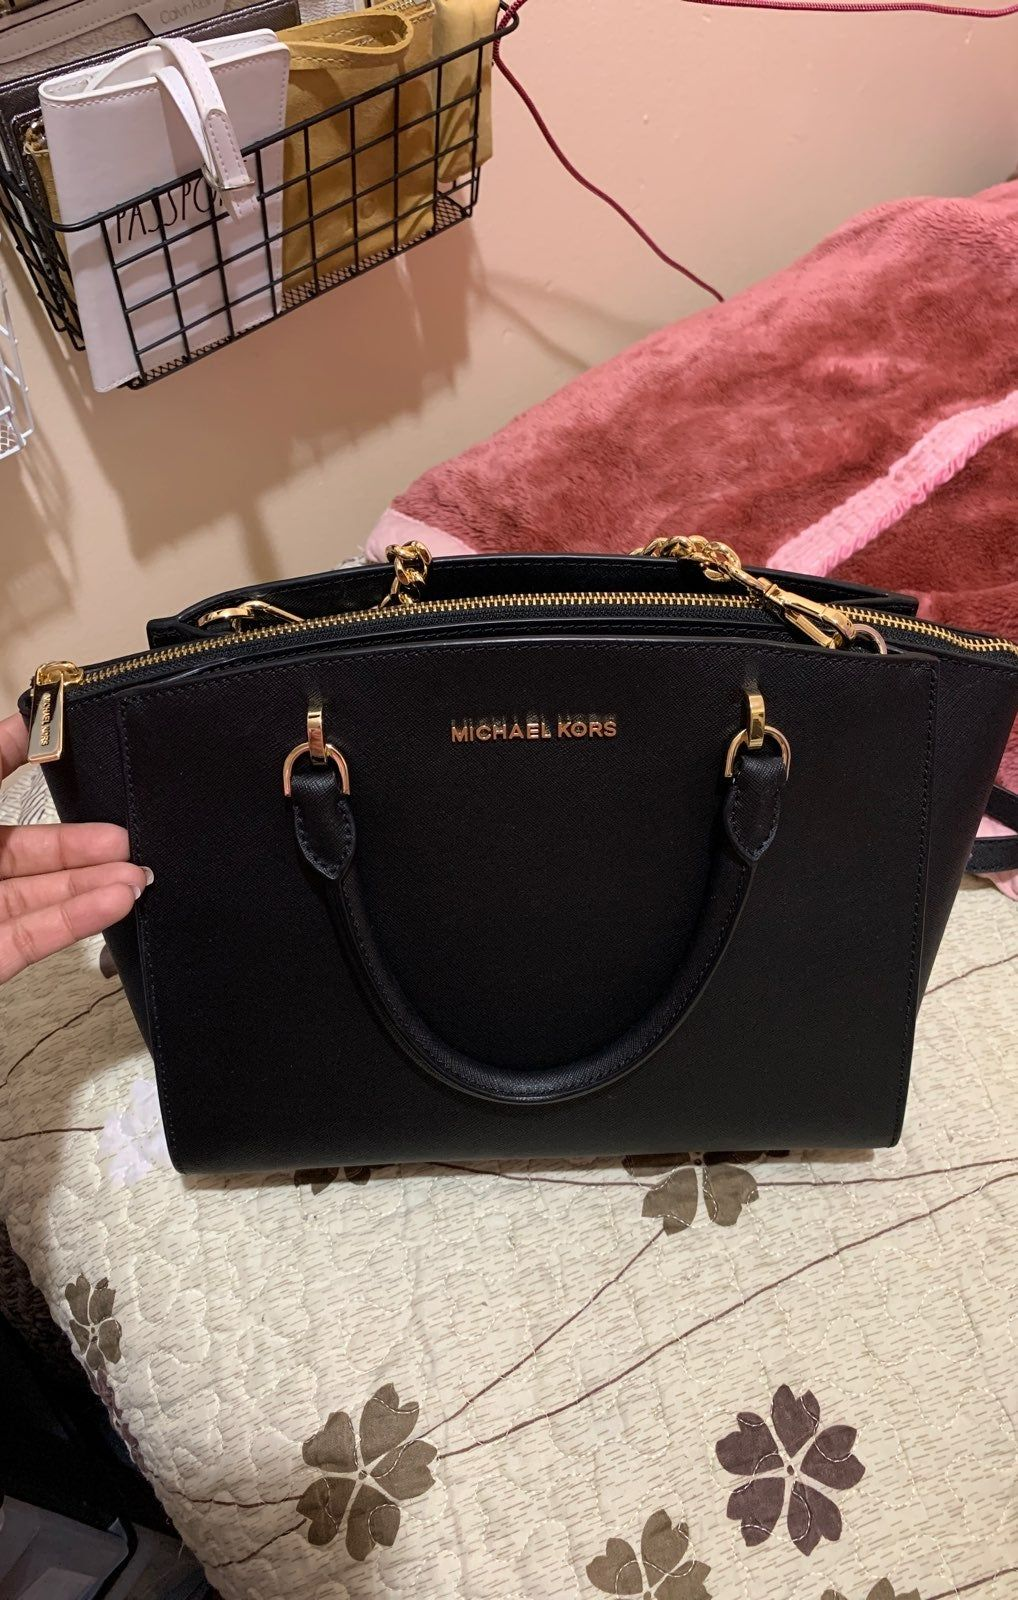 Mk Jet Black Ellis Large Satchel New With Tag Never Been Used The Longer Strap Is Removable This Is Such A Handbags Michael Kors Purses Michael Kors Purses